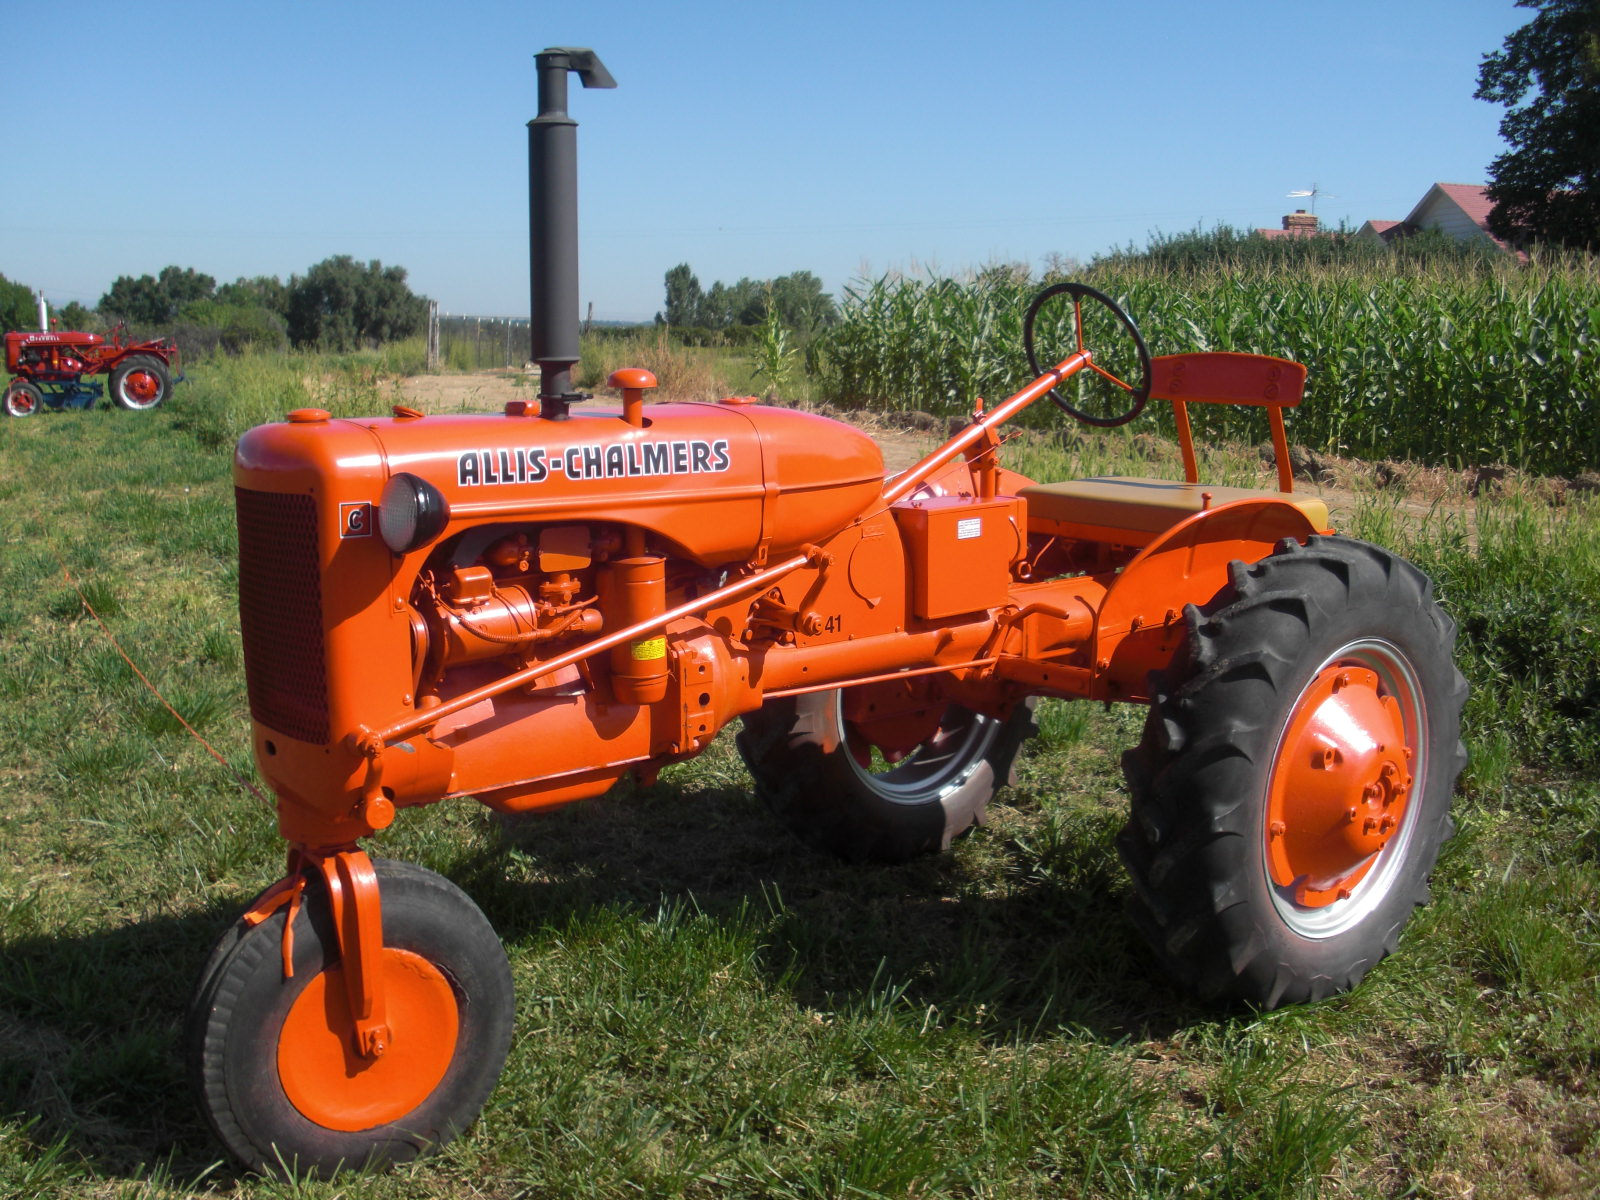 Allis Chalmers Tractor : Oil suitable for allis chalmers tractor including w